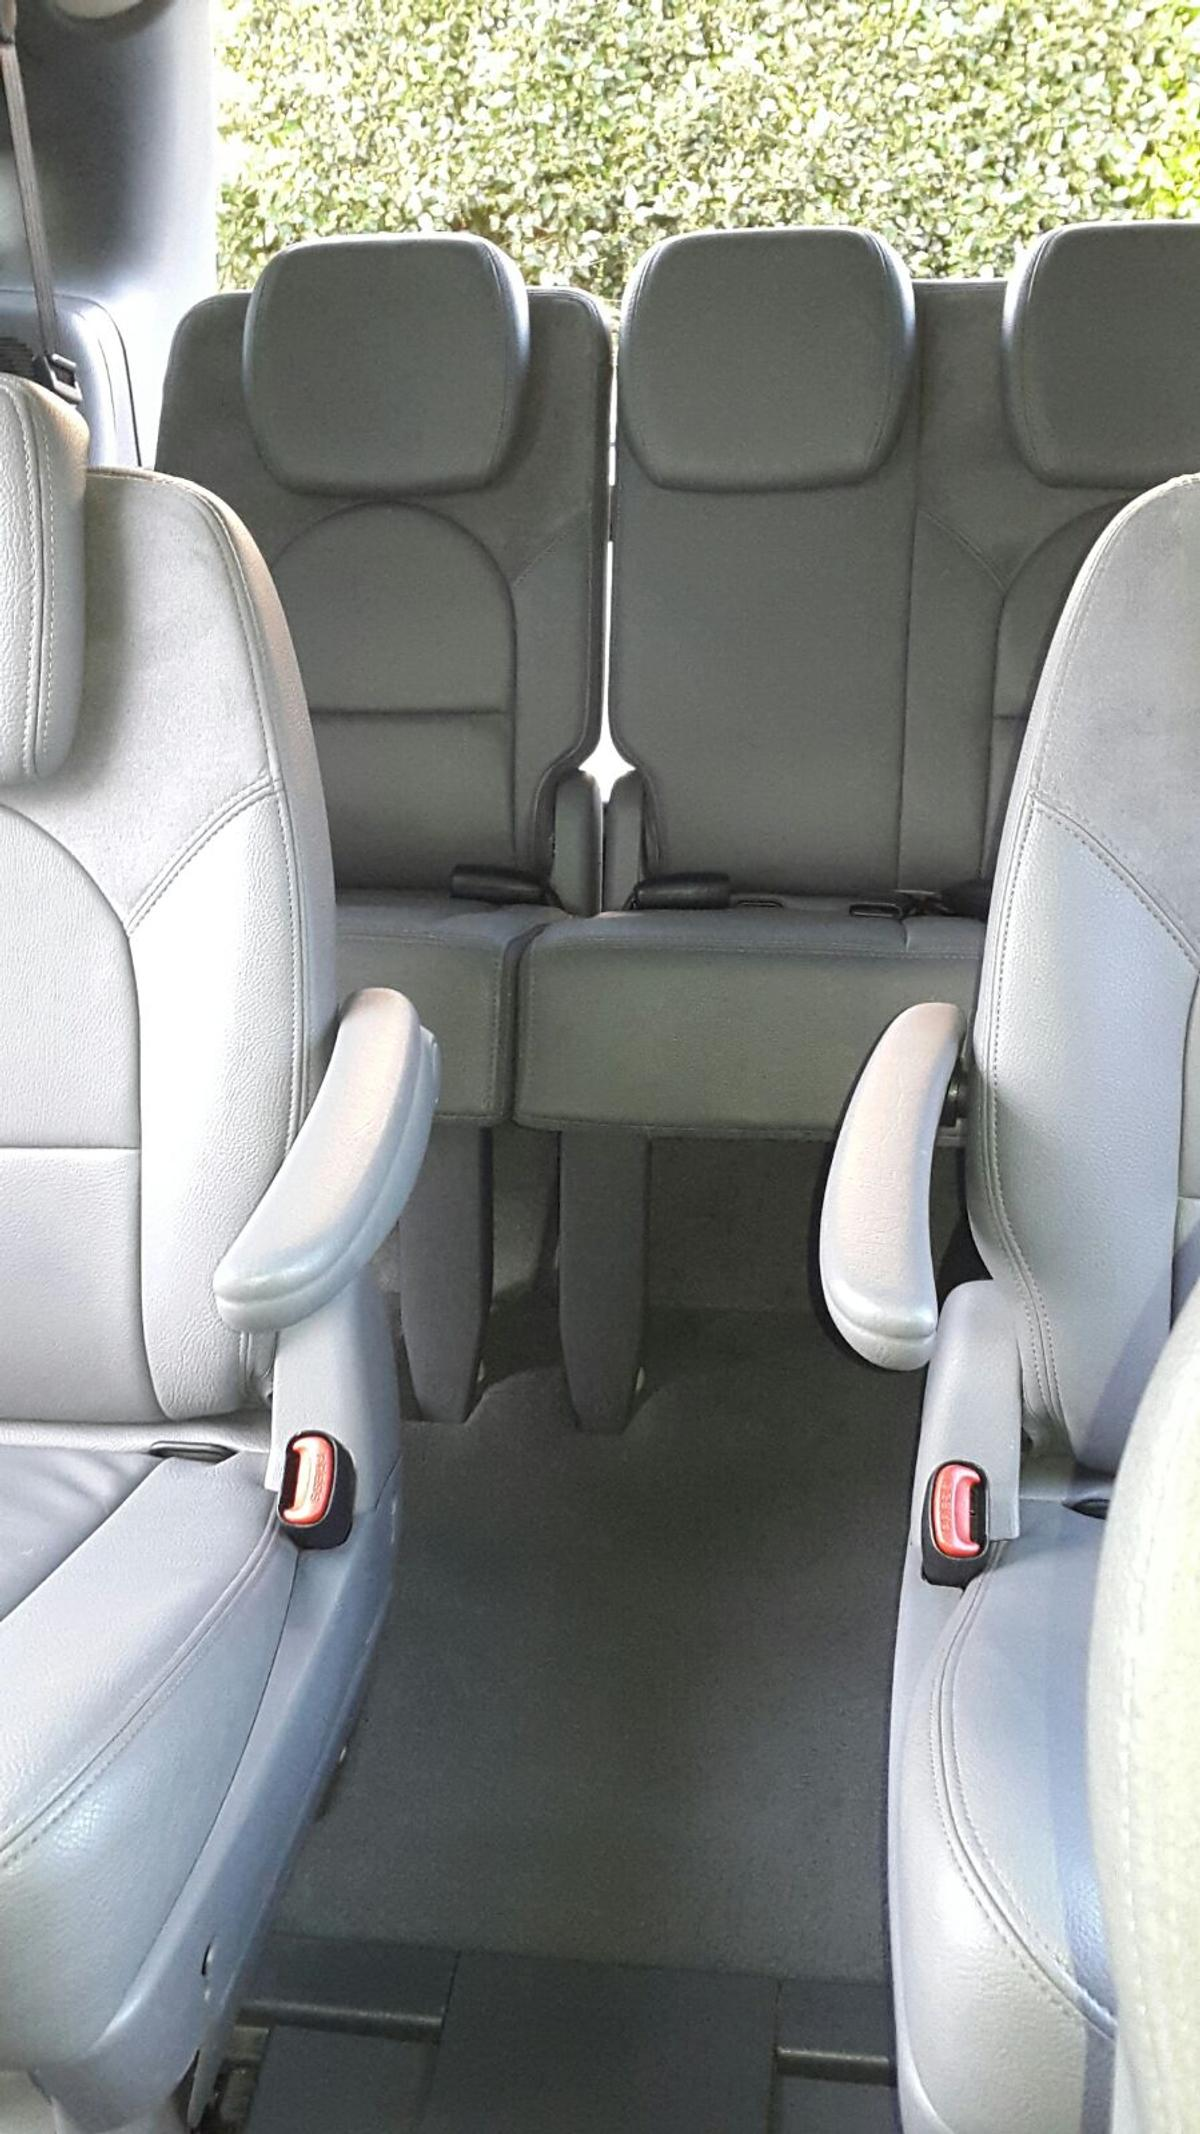 Stow And Go Seating >> Chrysler Grand Voyager Stow And Go 7 Seater In Ch66 Port For